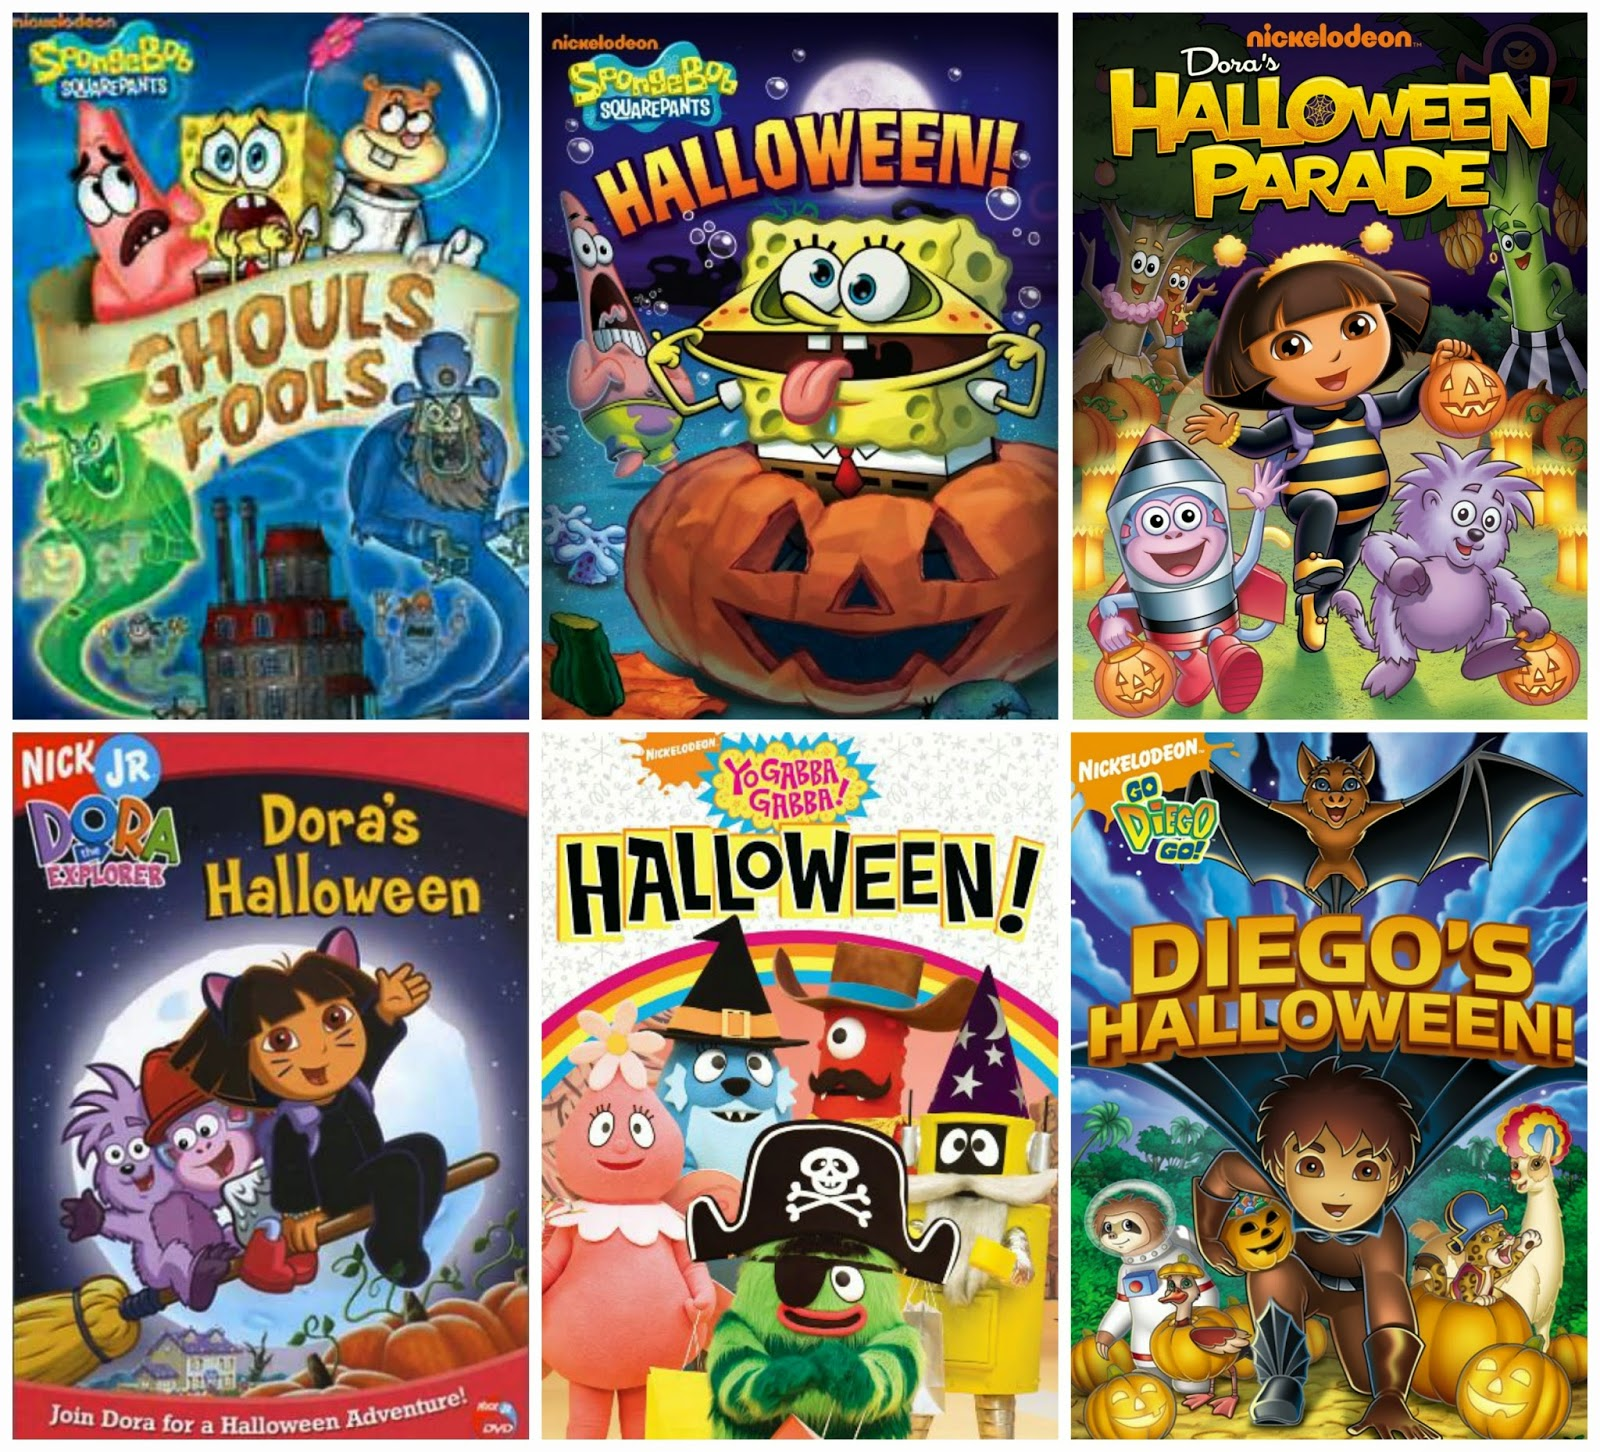 stacy tilton reviews: nickelodeon halloween dvd roundup #giveaway